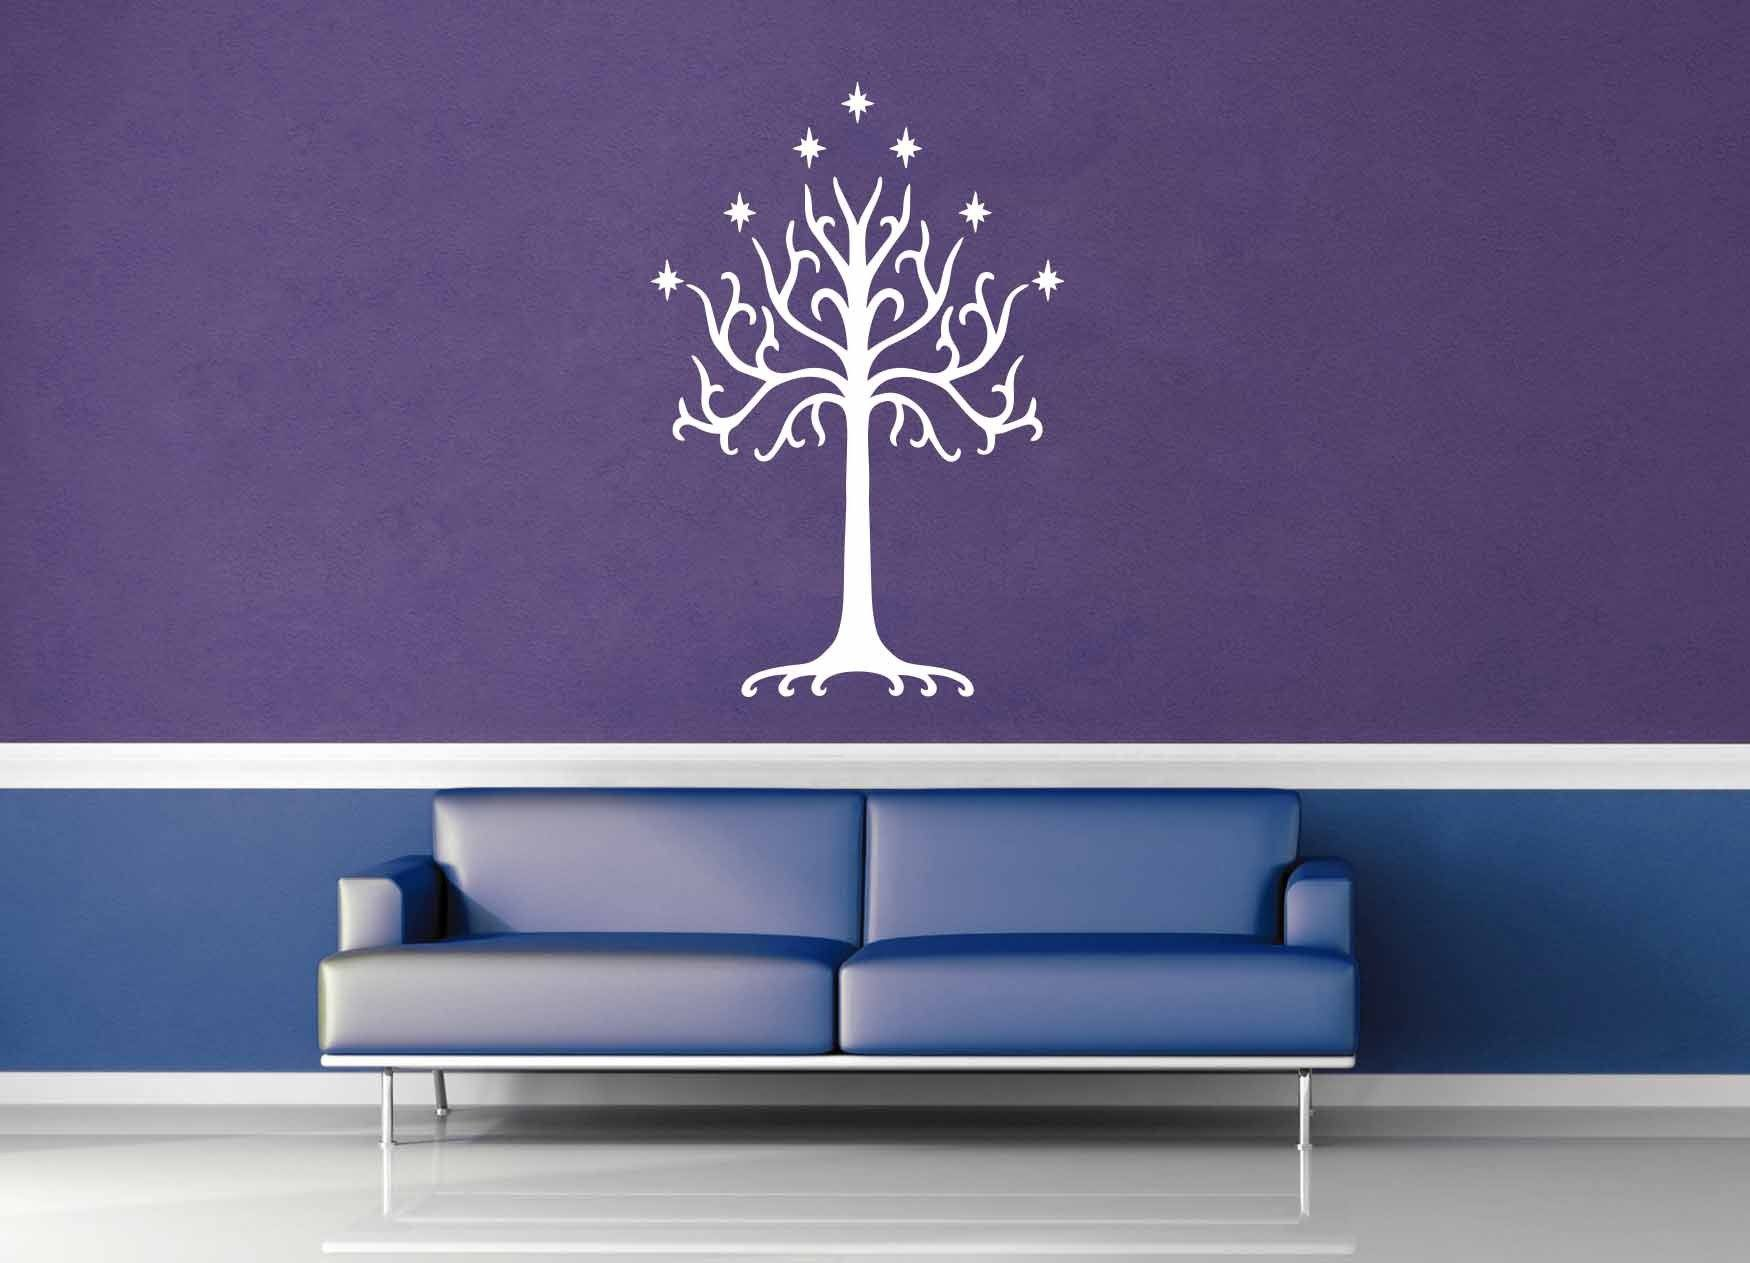 White Tree Of Gondor Tolkien Wall Decal Geekerymade - Wall decals white tree